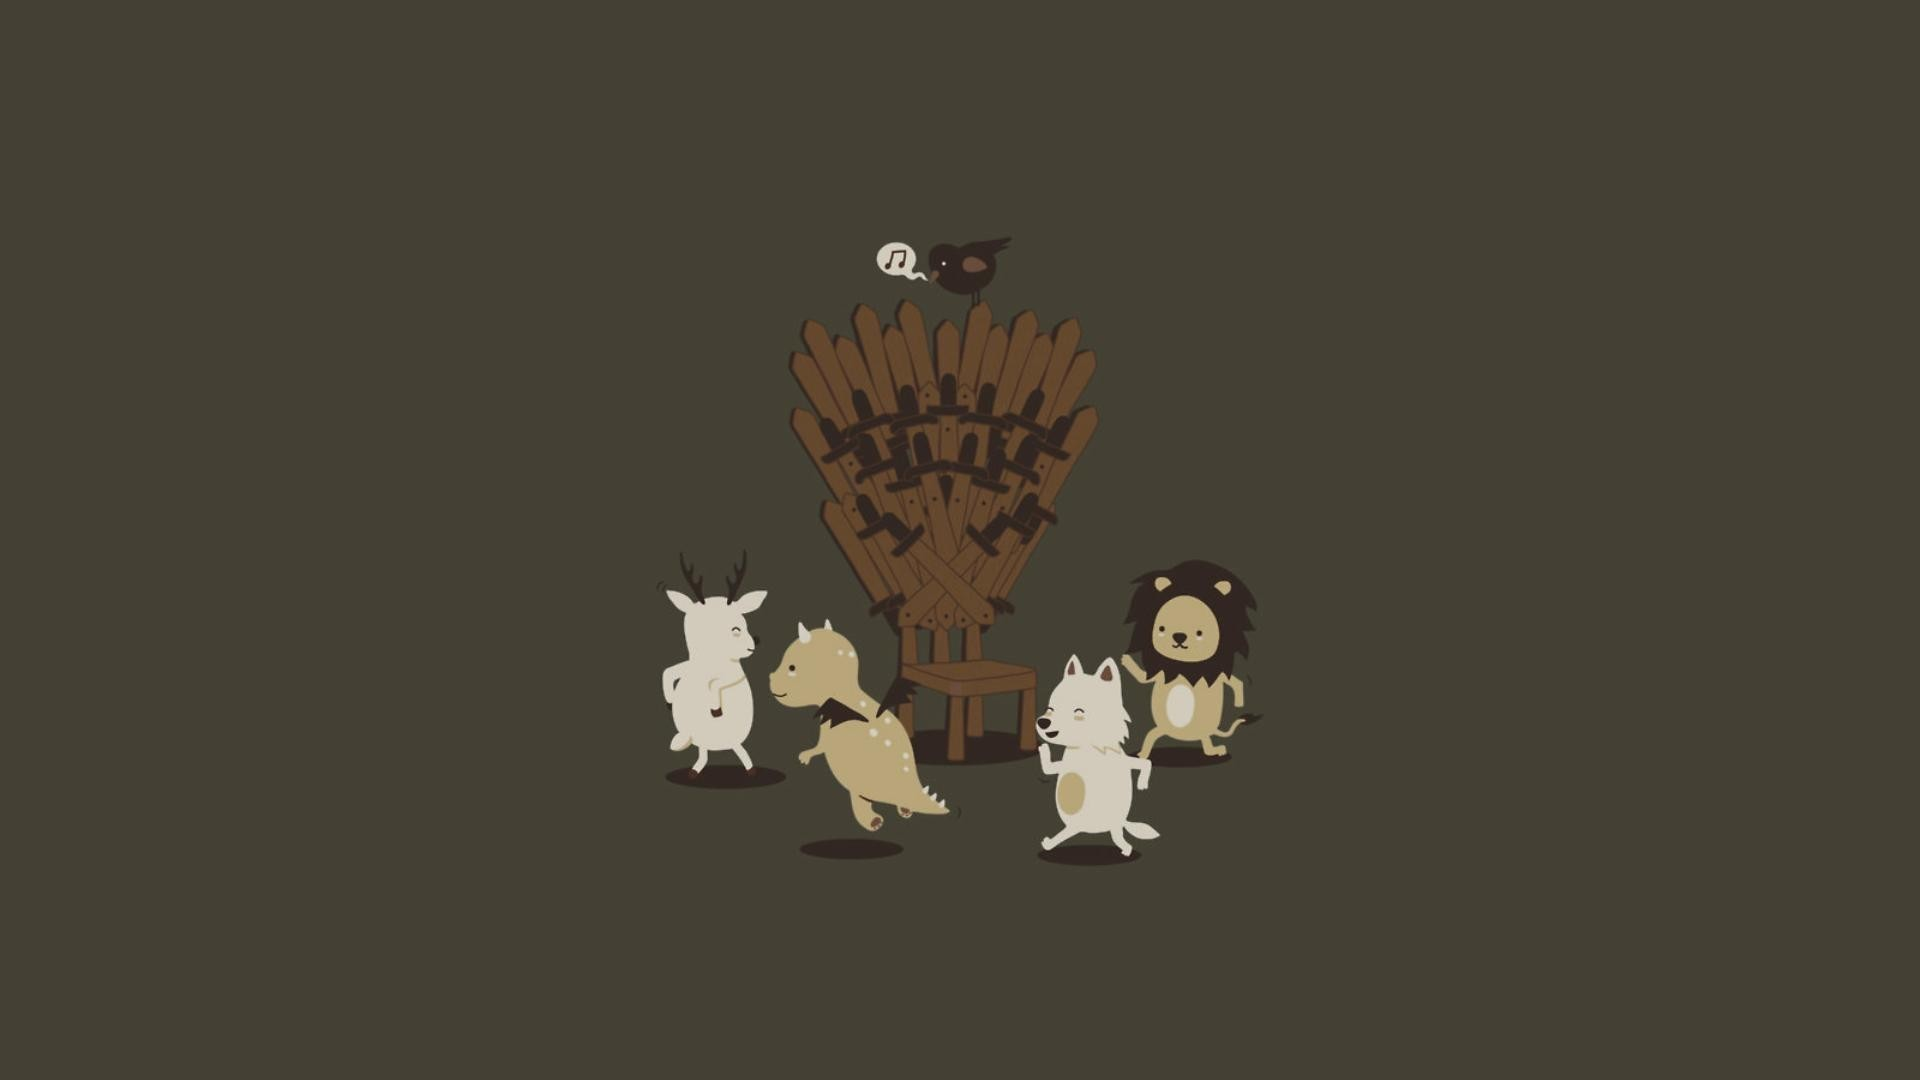 1920x1080 A Song Of Ice And Fire Dance Deer Dragons Funny Game Thrones House  Baratheon Lannister Stark Targaryen Lions Minimalistic Throne Wolves ...